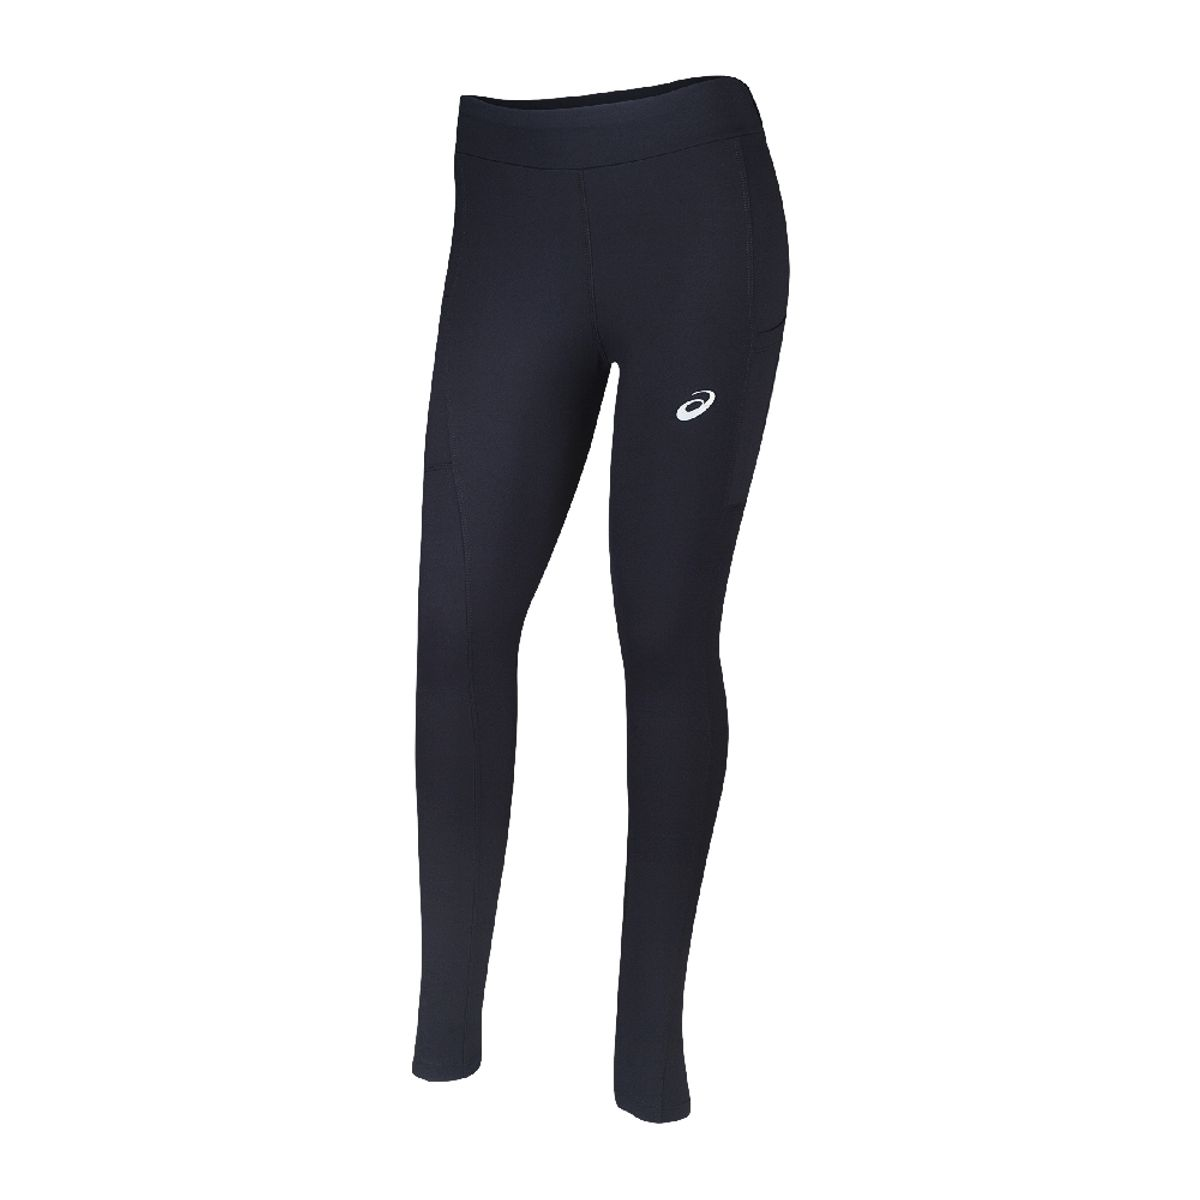 Calca-Legging-Asics-Tight---Feminino---Preto